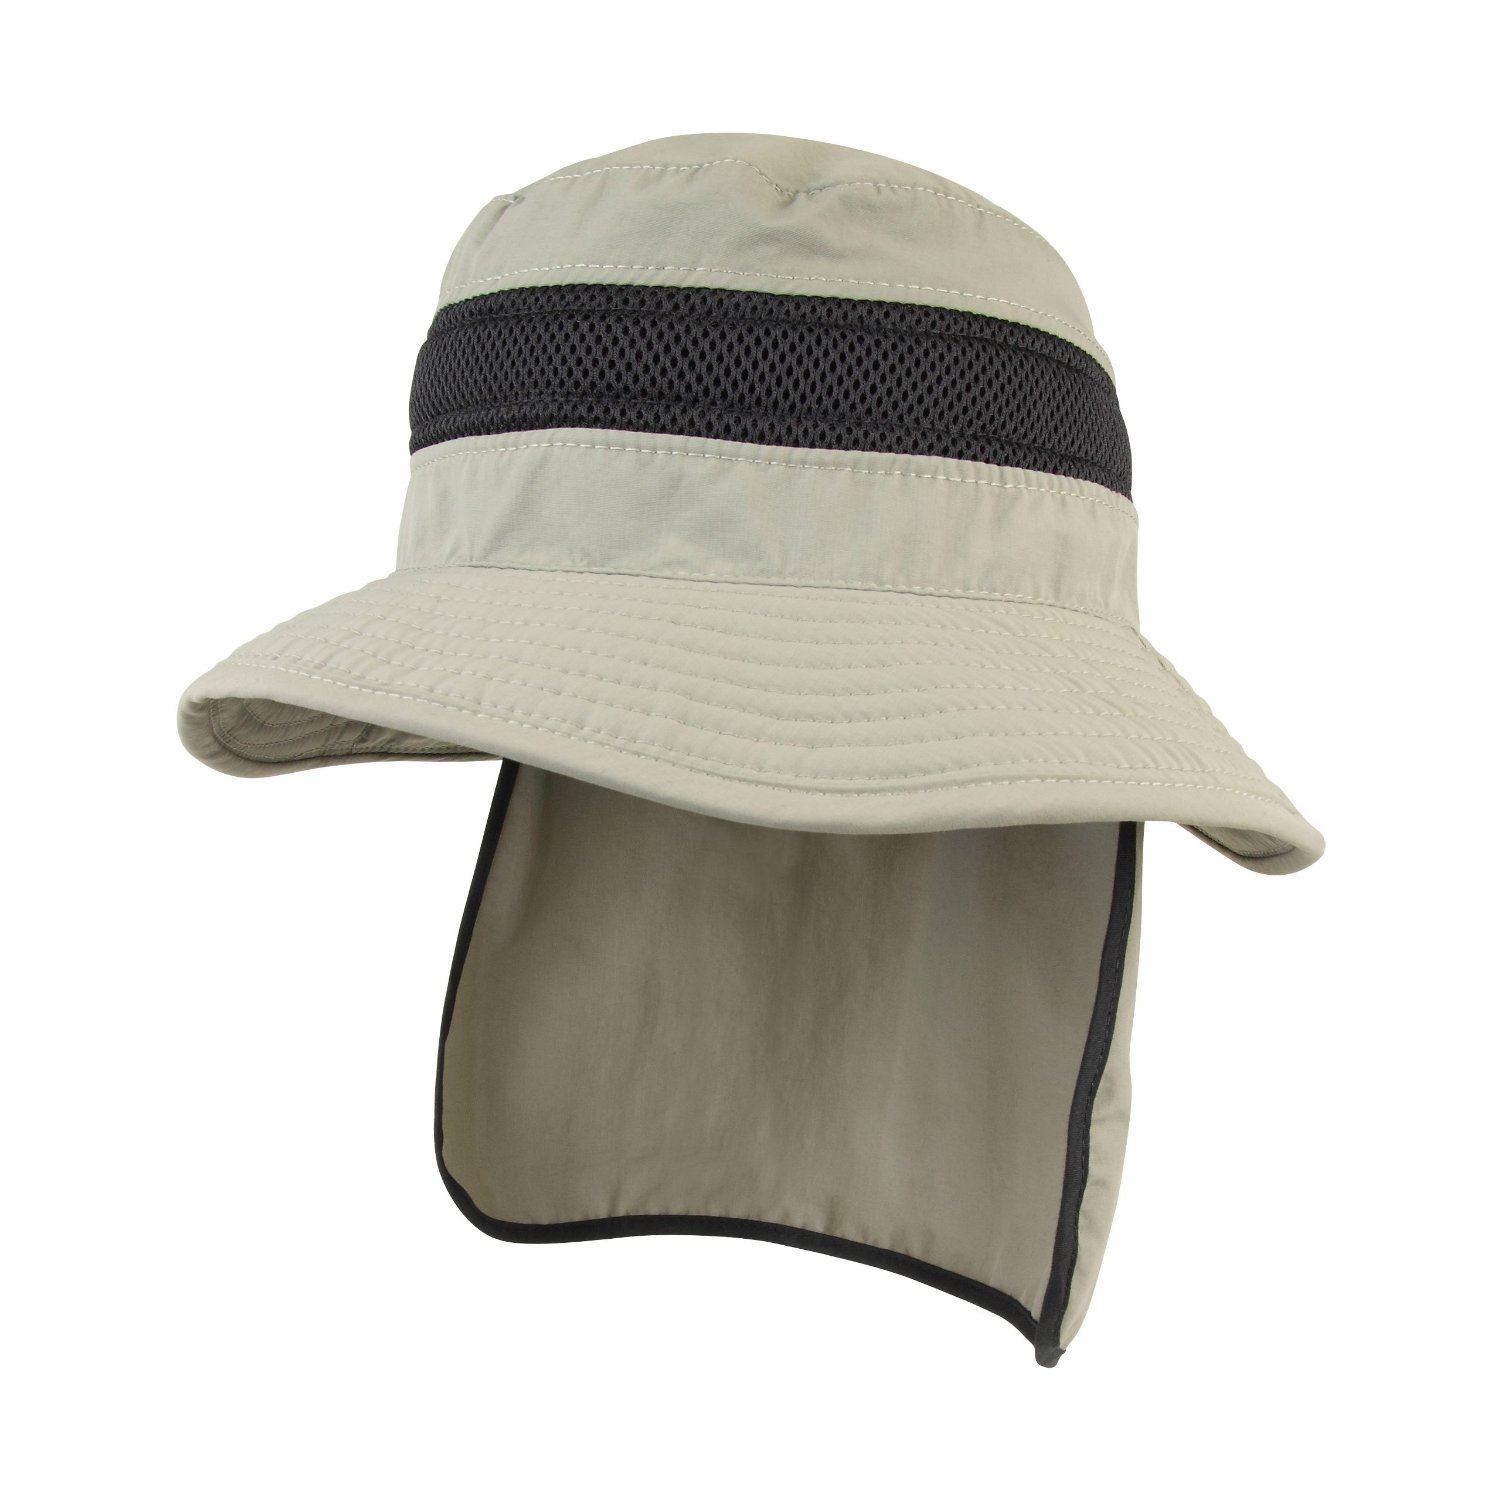 JUNIPER UNISEX UV BUCKET HAT WITH NECK FLAP (J7211) REVIEW  4f979d1d9b5a